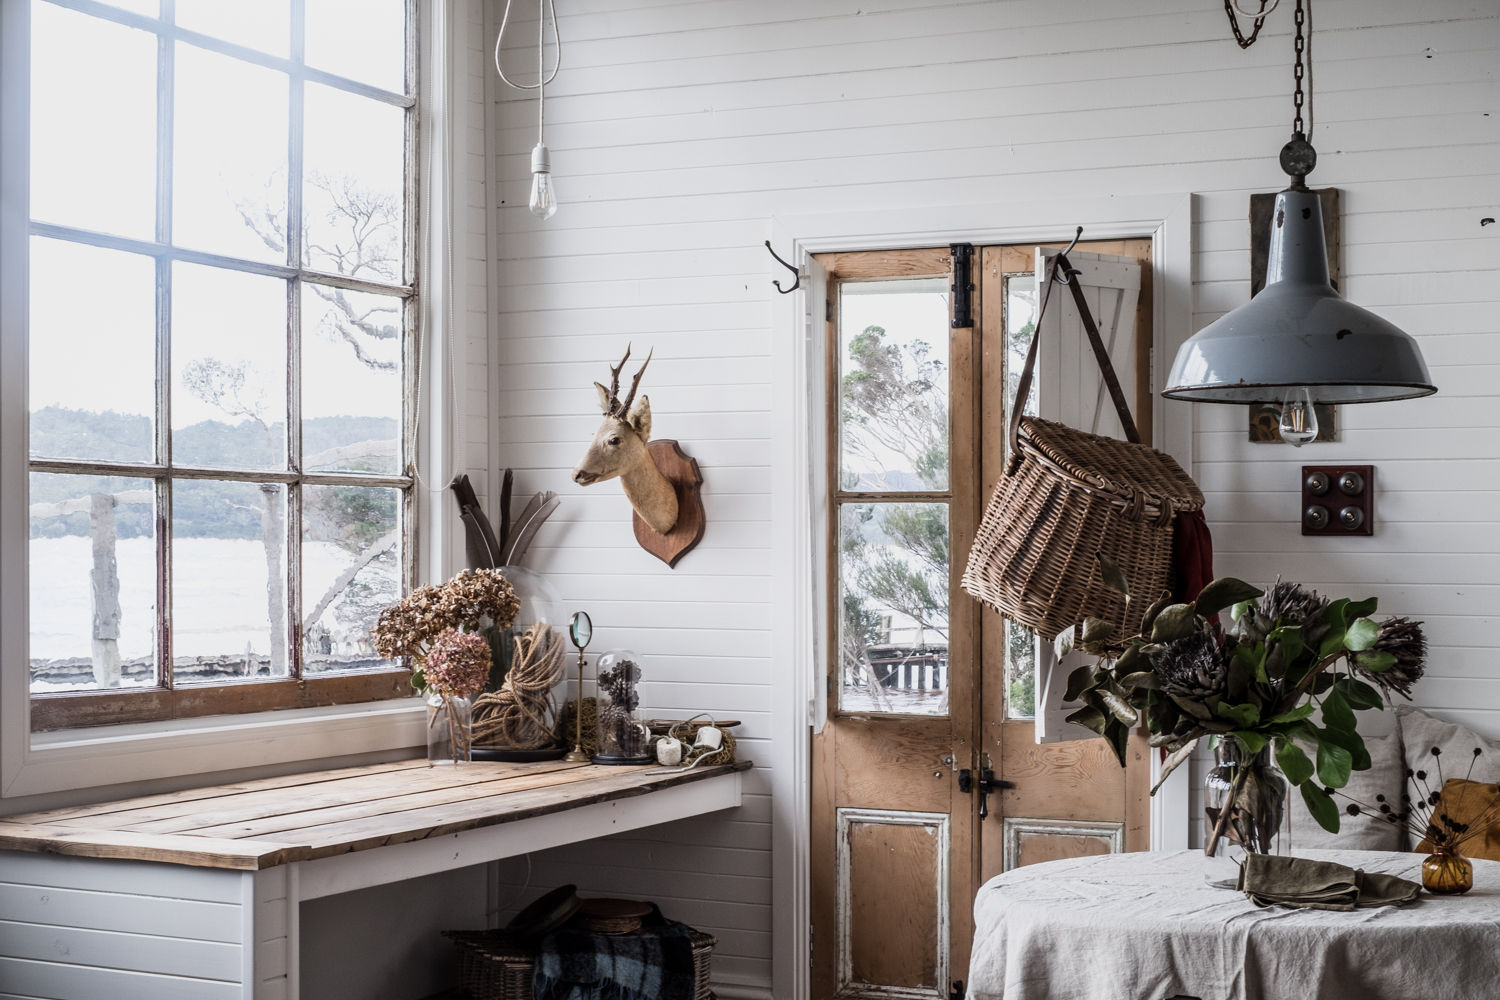 Rustic wedding accommodation in Captains Rest - Tasmania